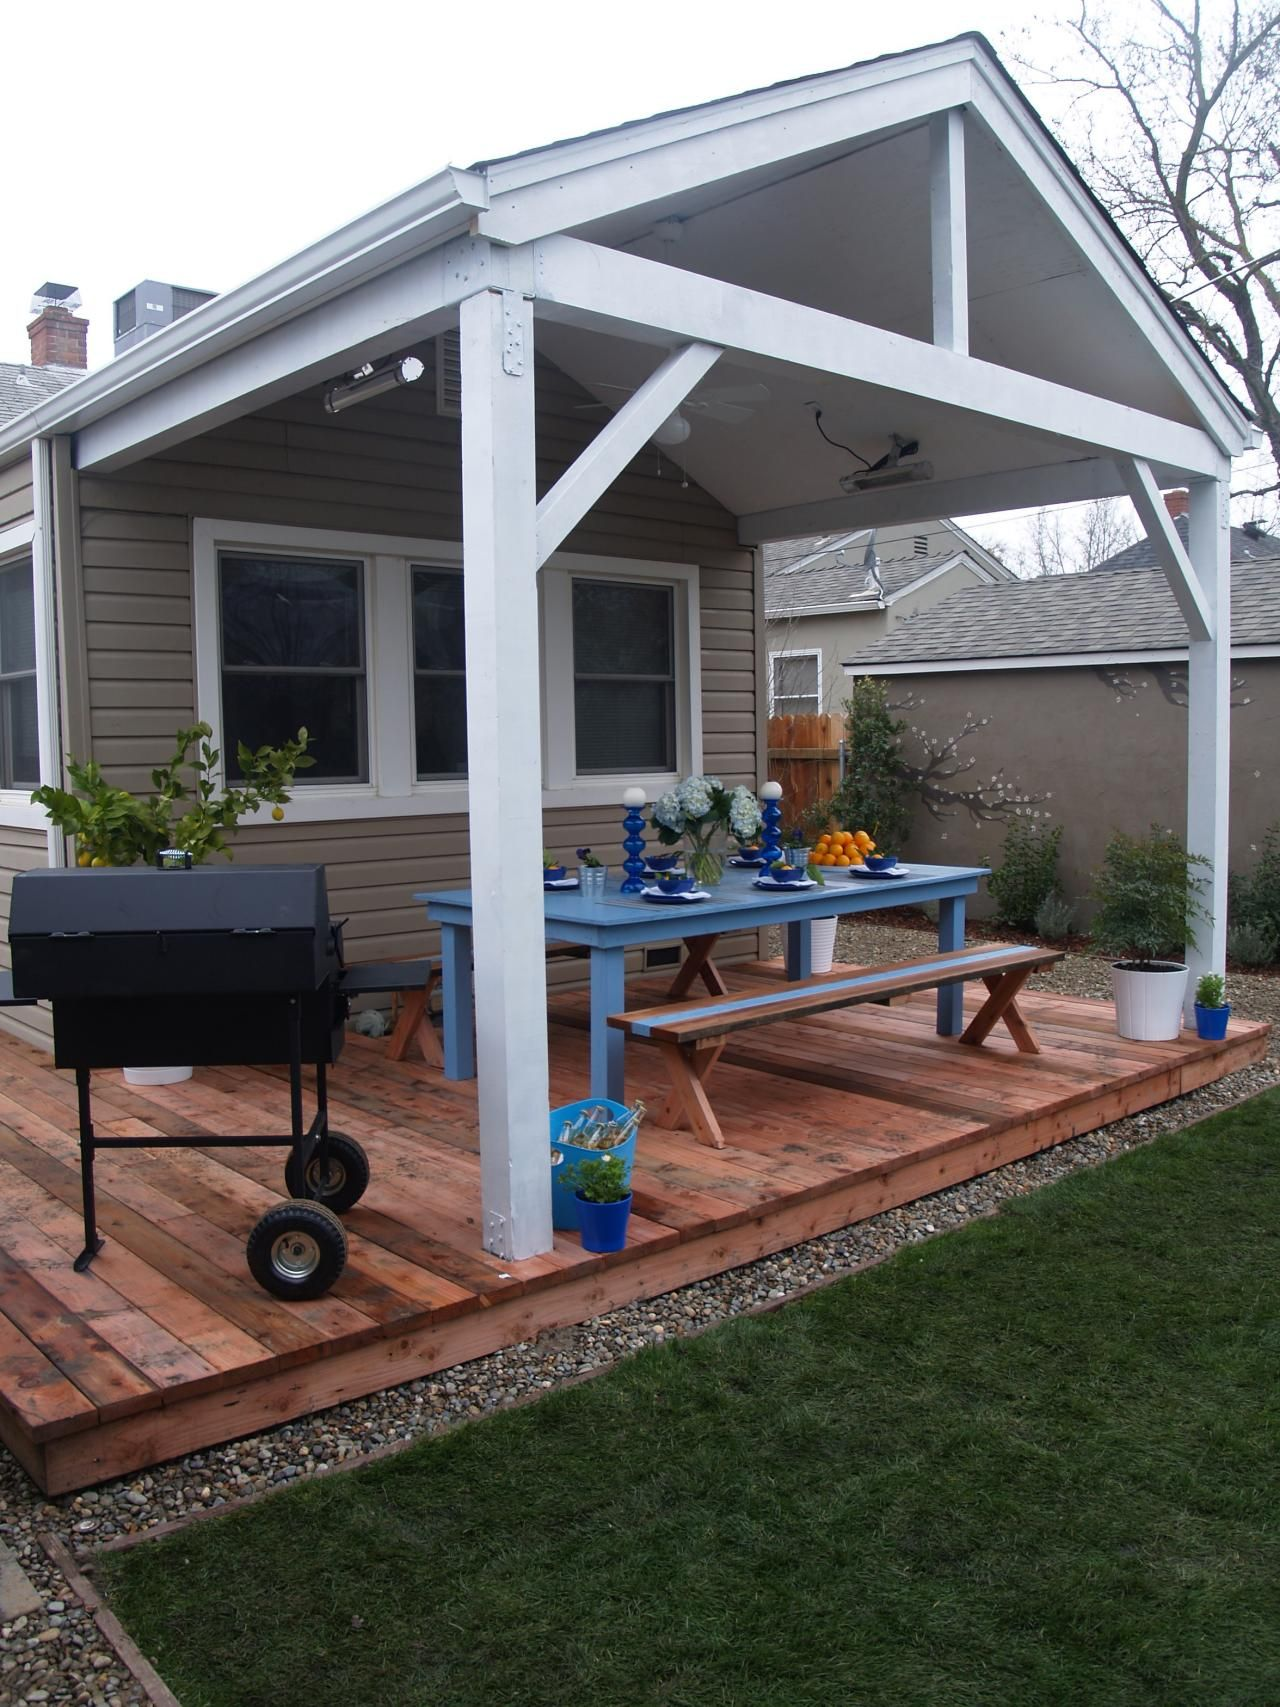 Beautiful Decks Designed By Diy Network Experts Patio And Deck Design Ideas Planning Preparing Building